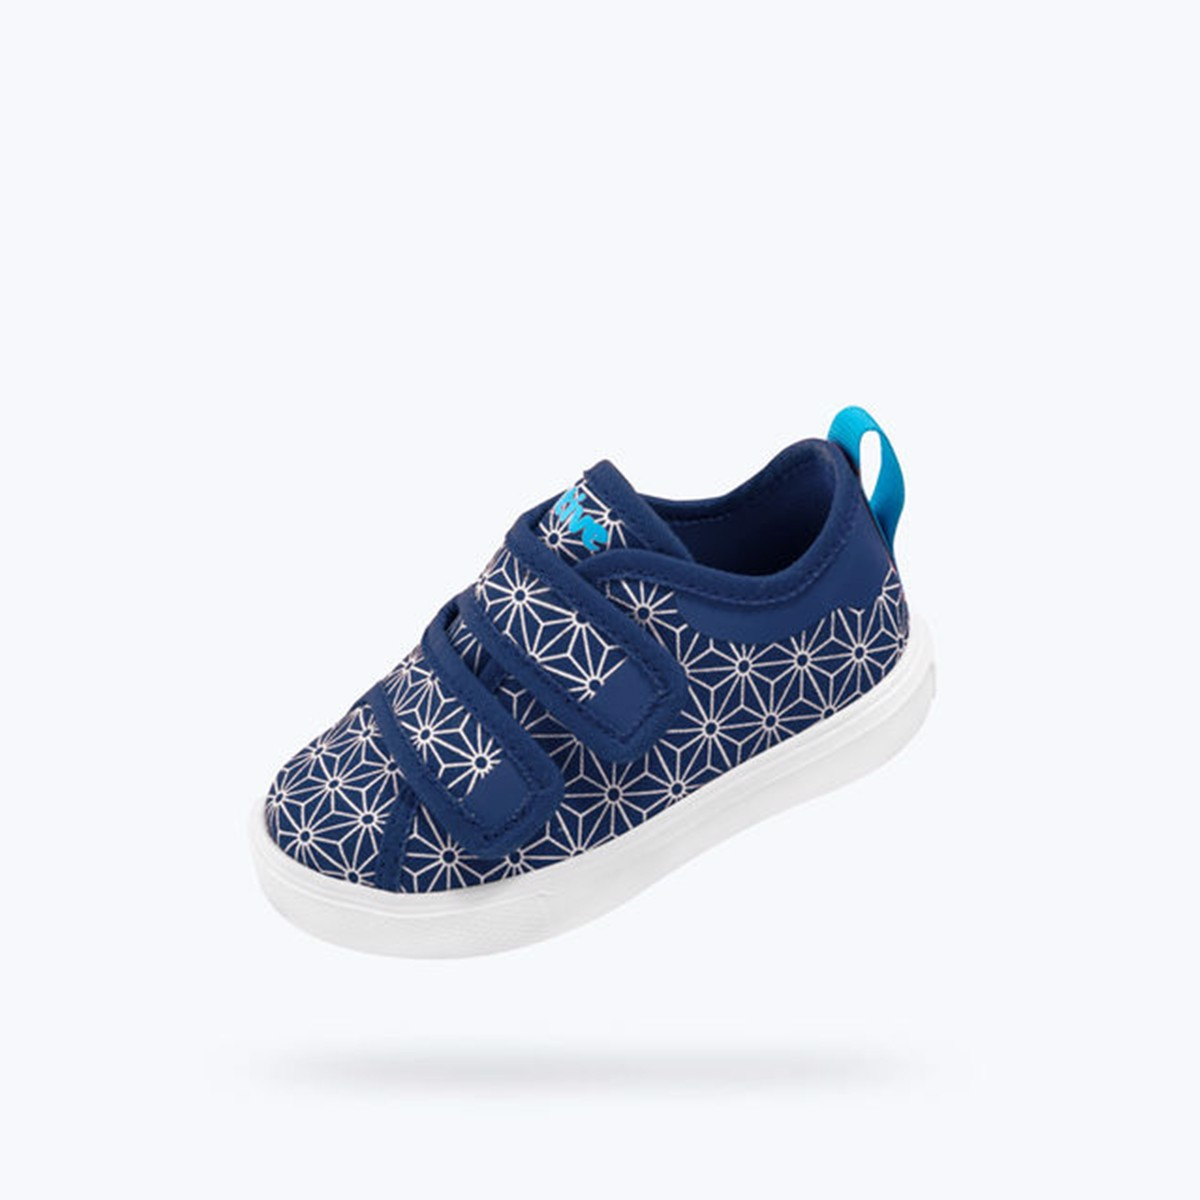 Giày native c monaco velcro canvas child (23104429) regatta blue/ shell white/ asanoha